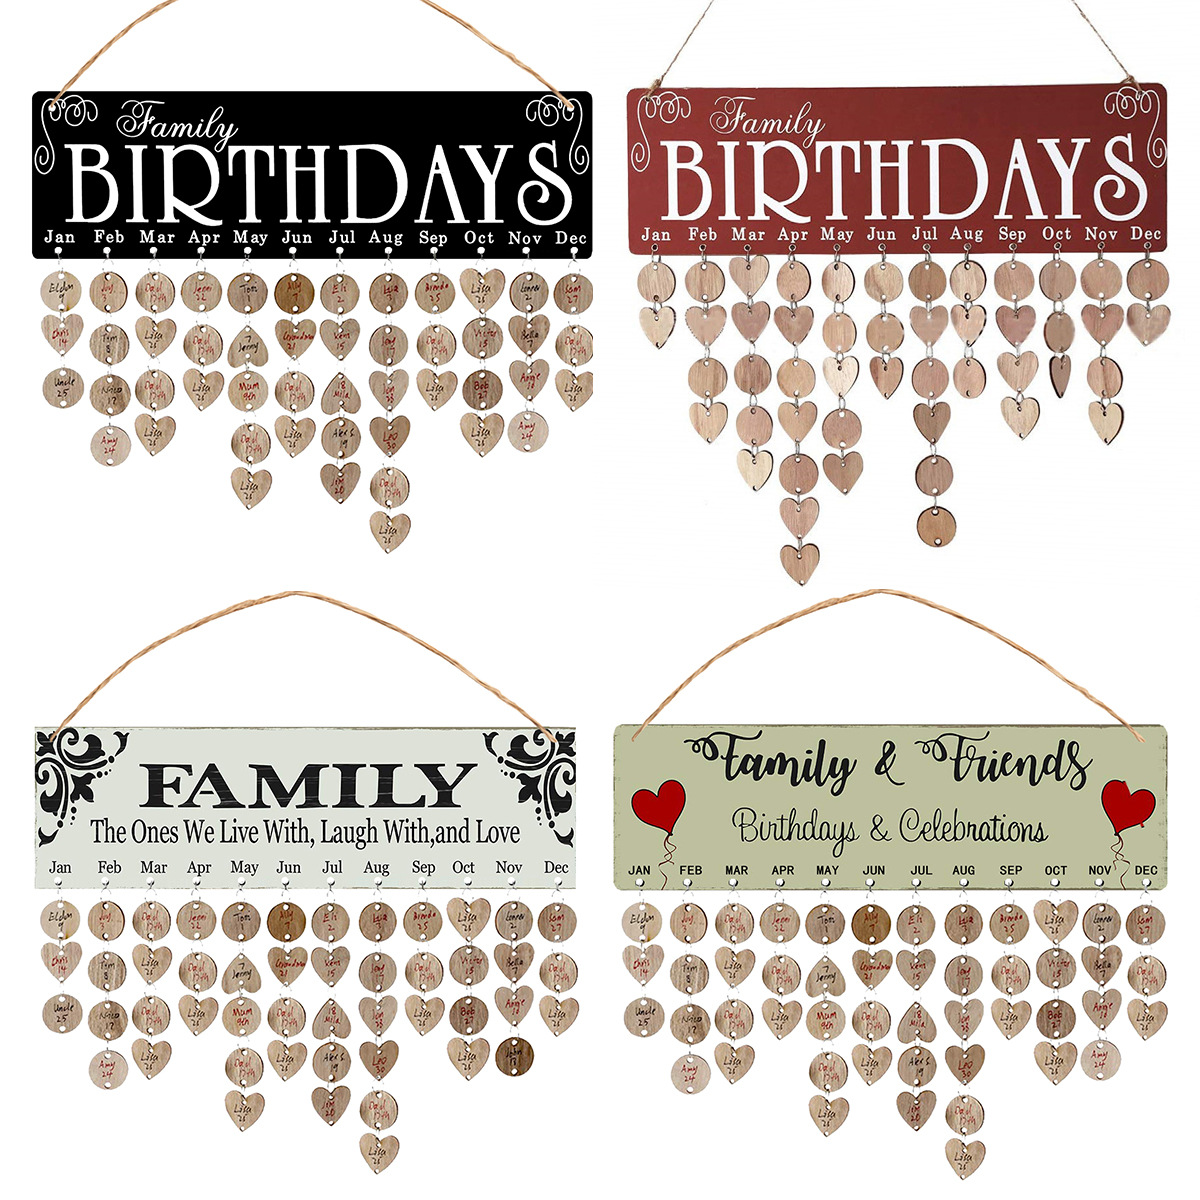 Wooden calendar listed birthday party home decoration pendant creative manual calendar craft gift decoration pendant.